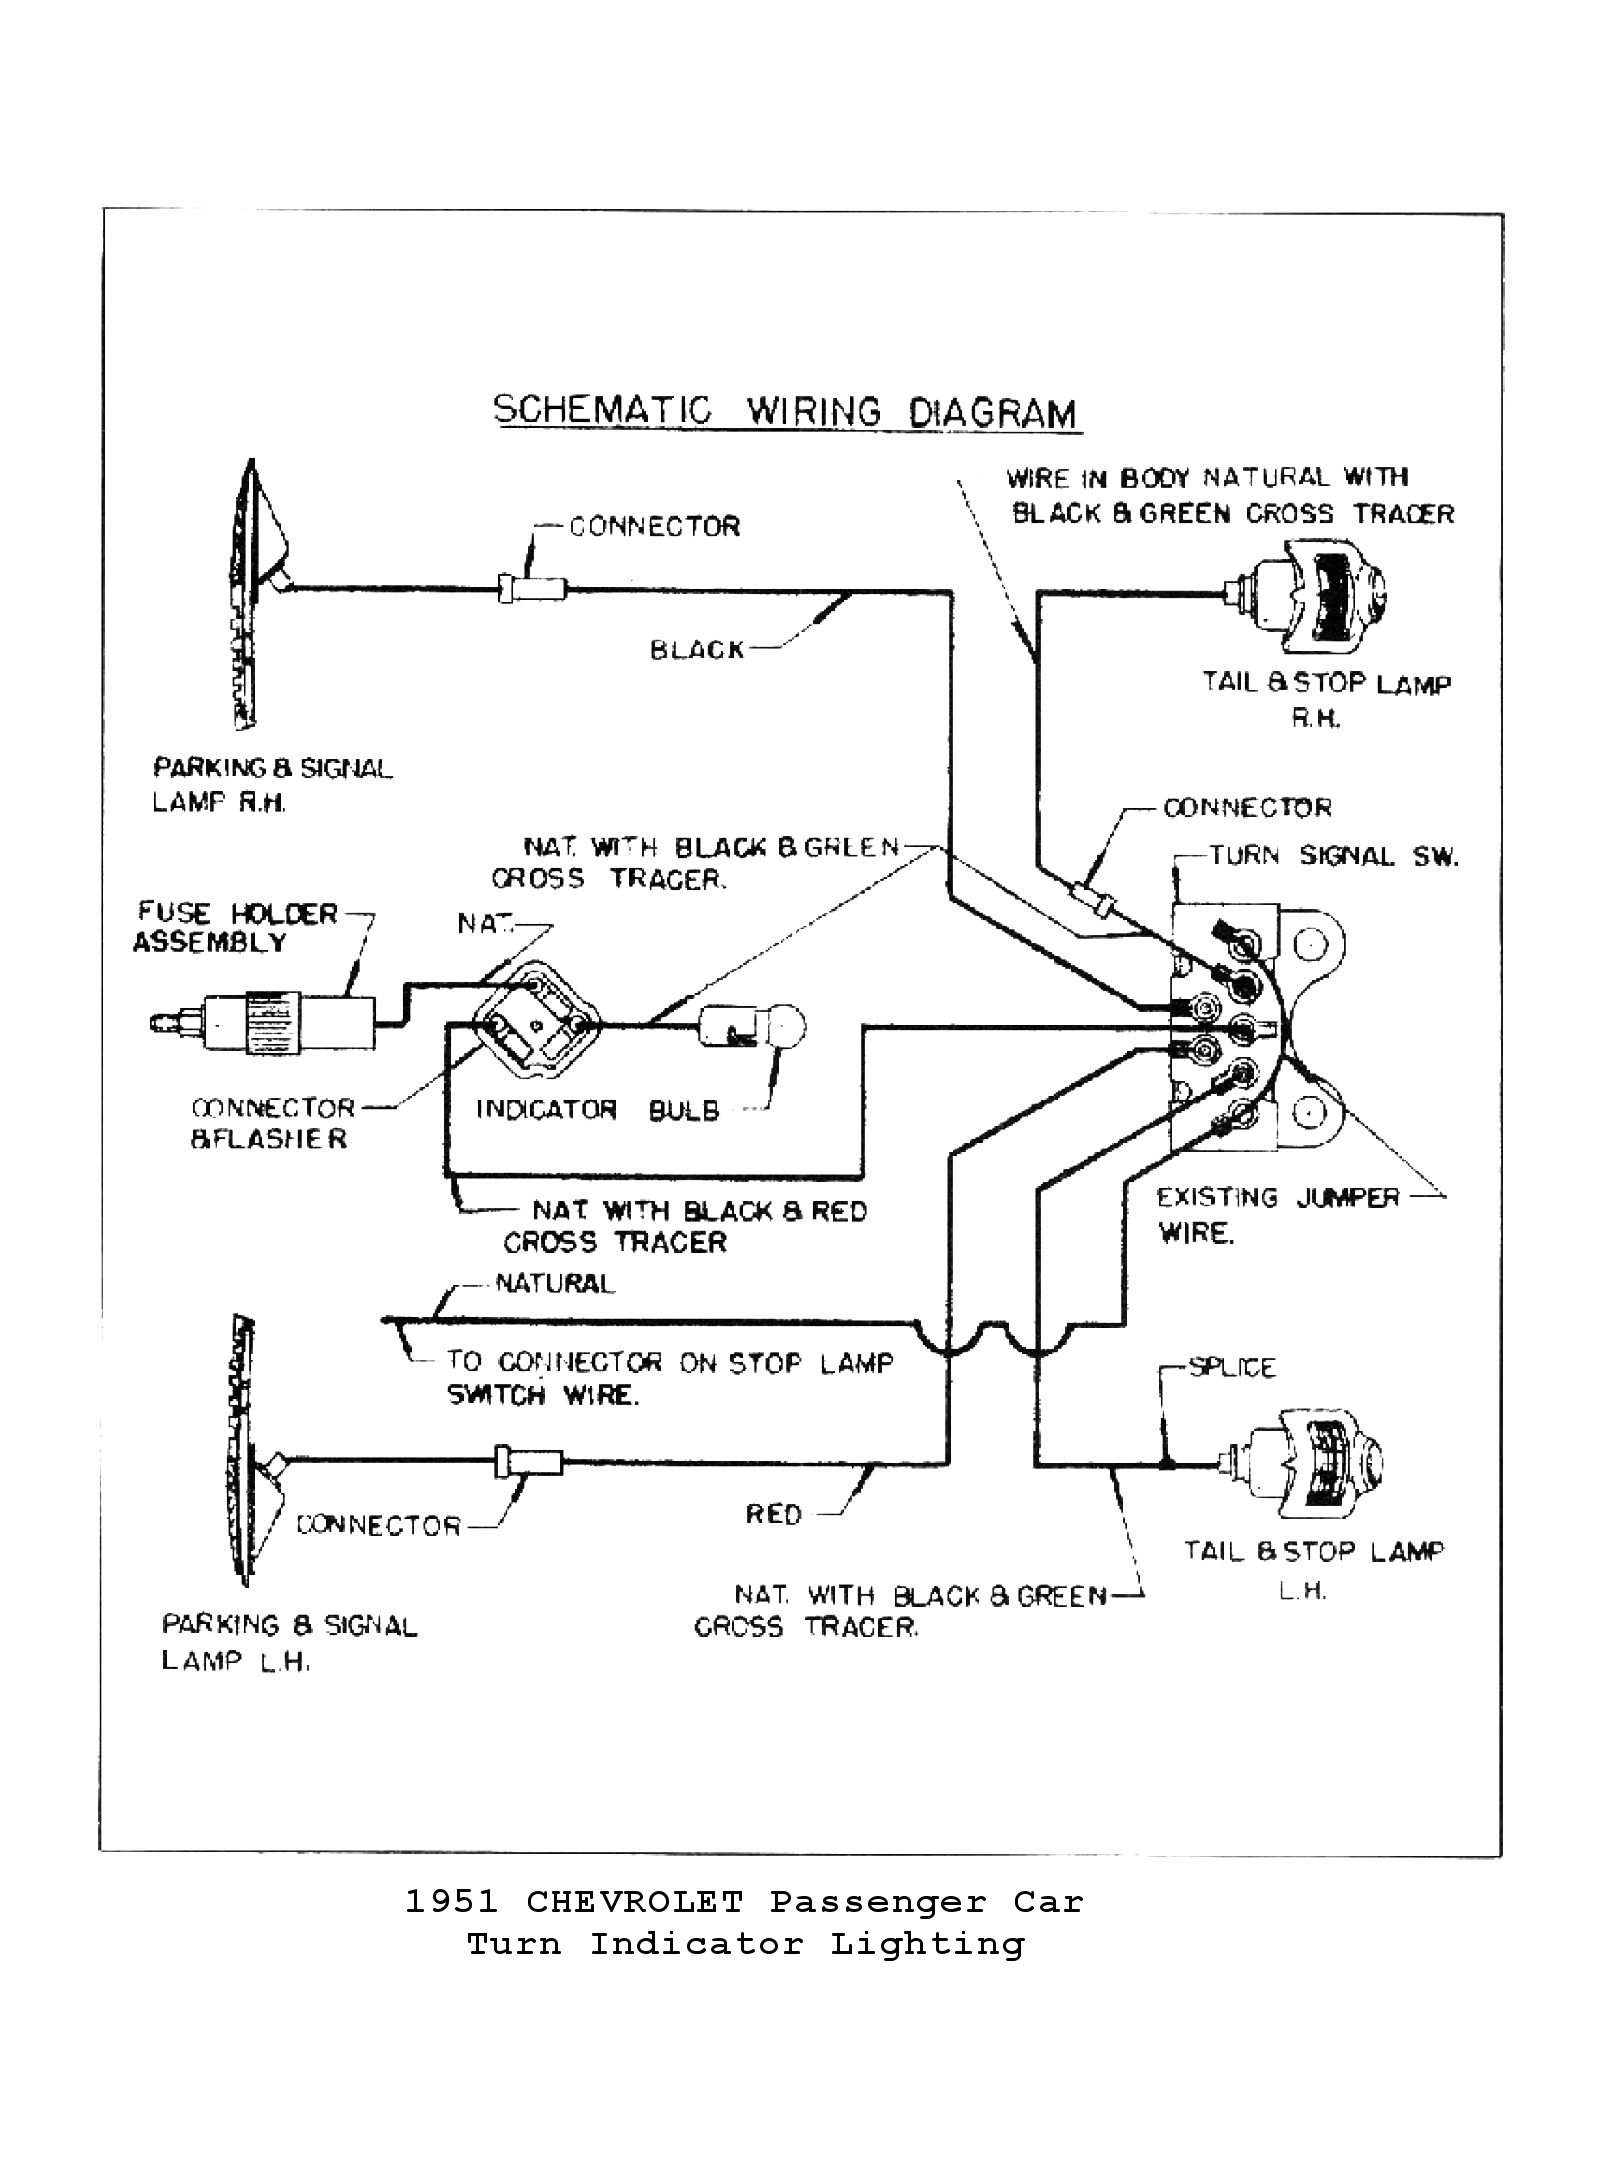 5152turnsignals 55 chevy heater diagram wiring schematic wiring diagram simonand 66 Chevy Headlight Switch Wiring Diagram at soozxer.org